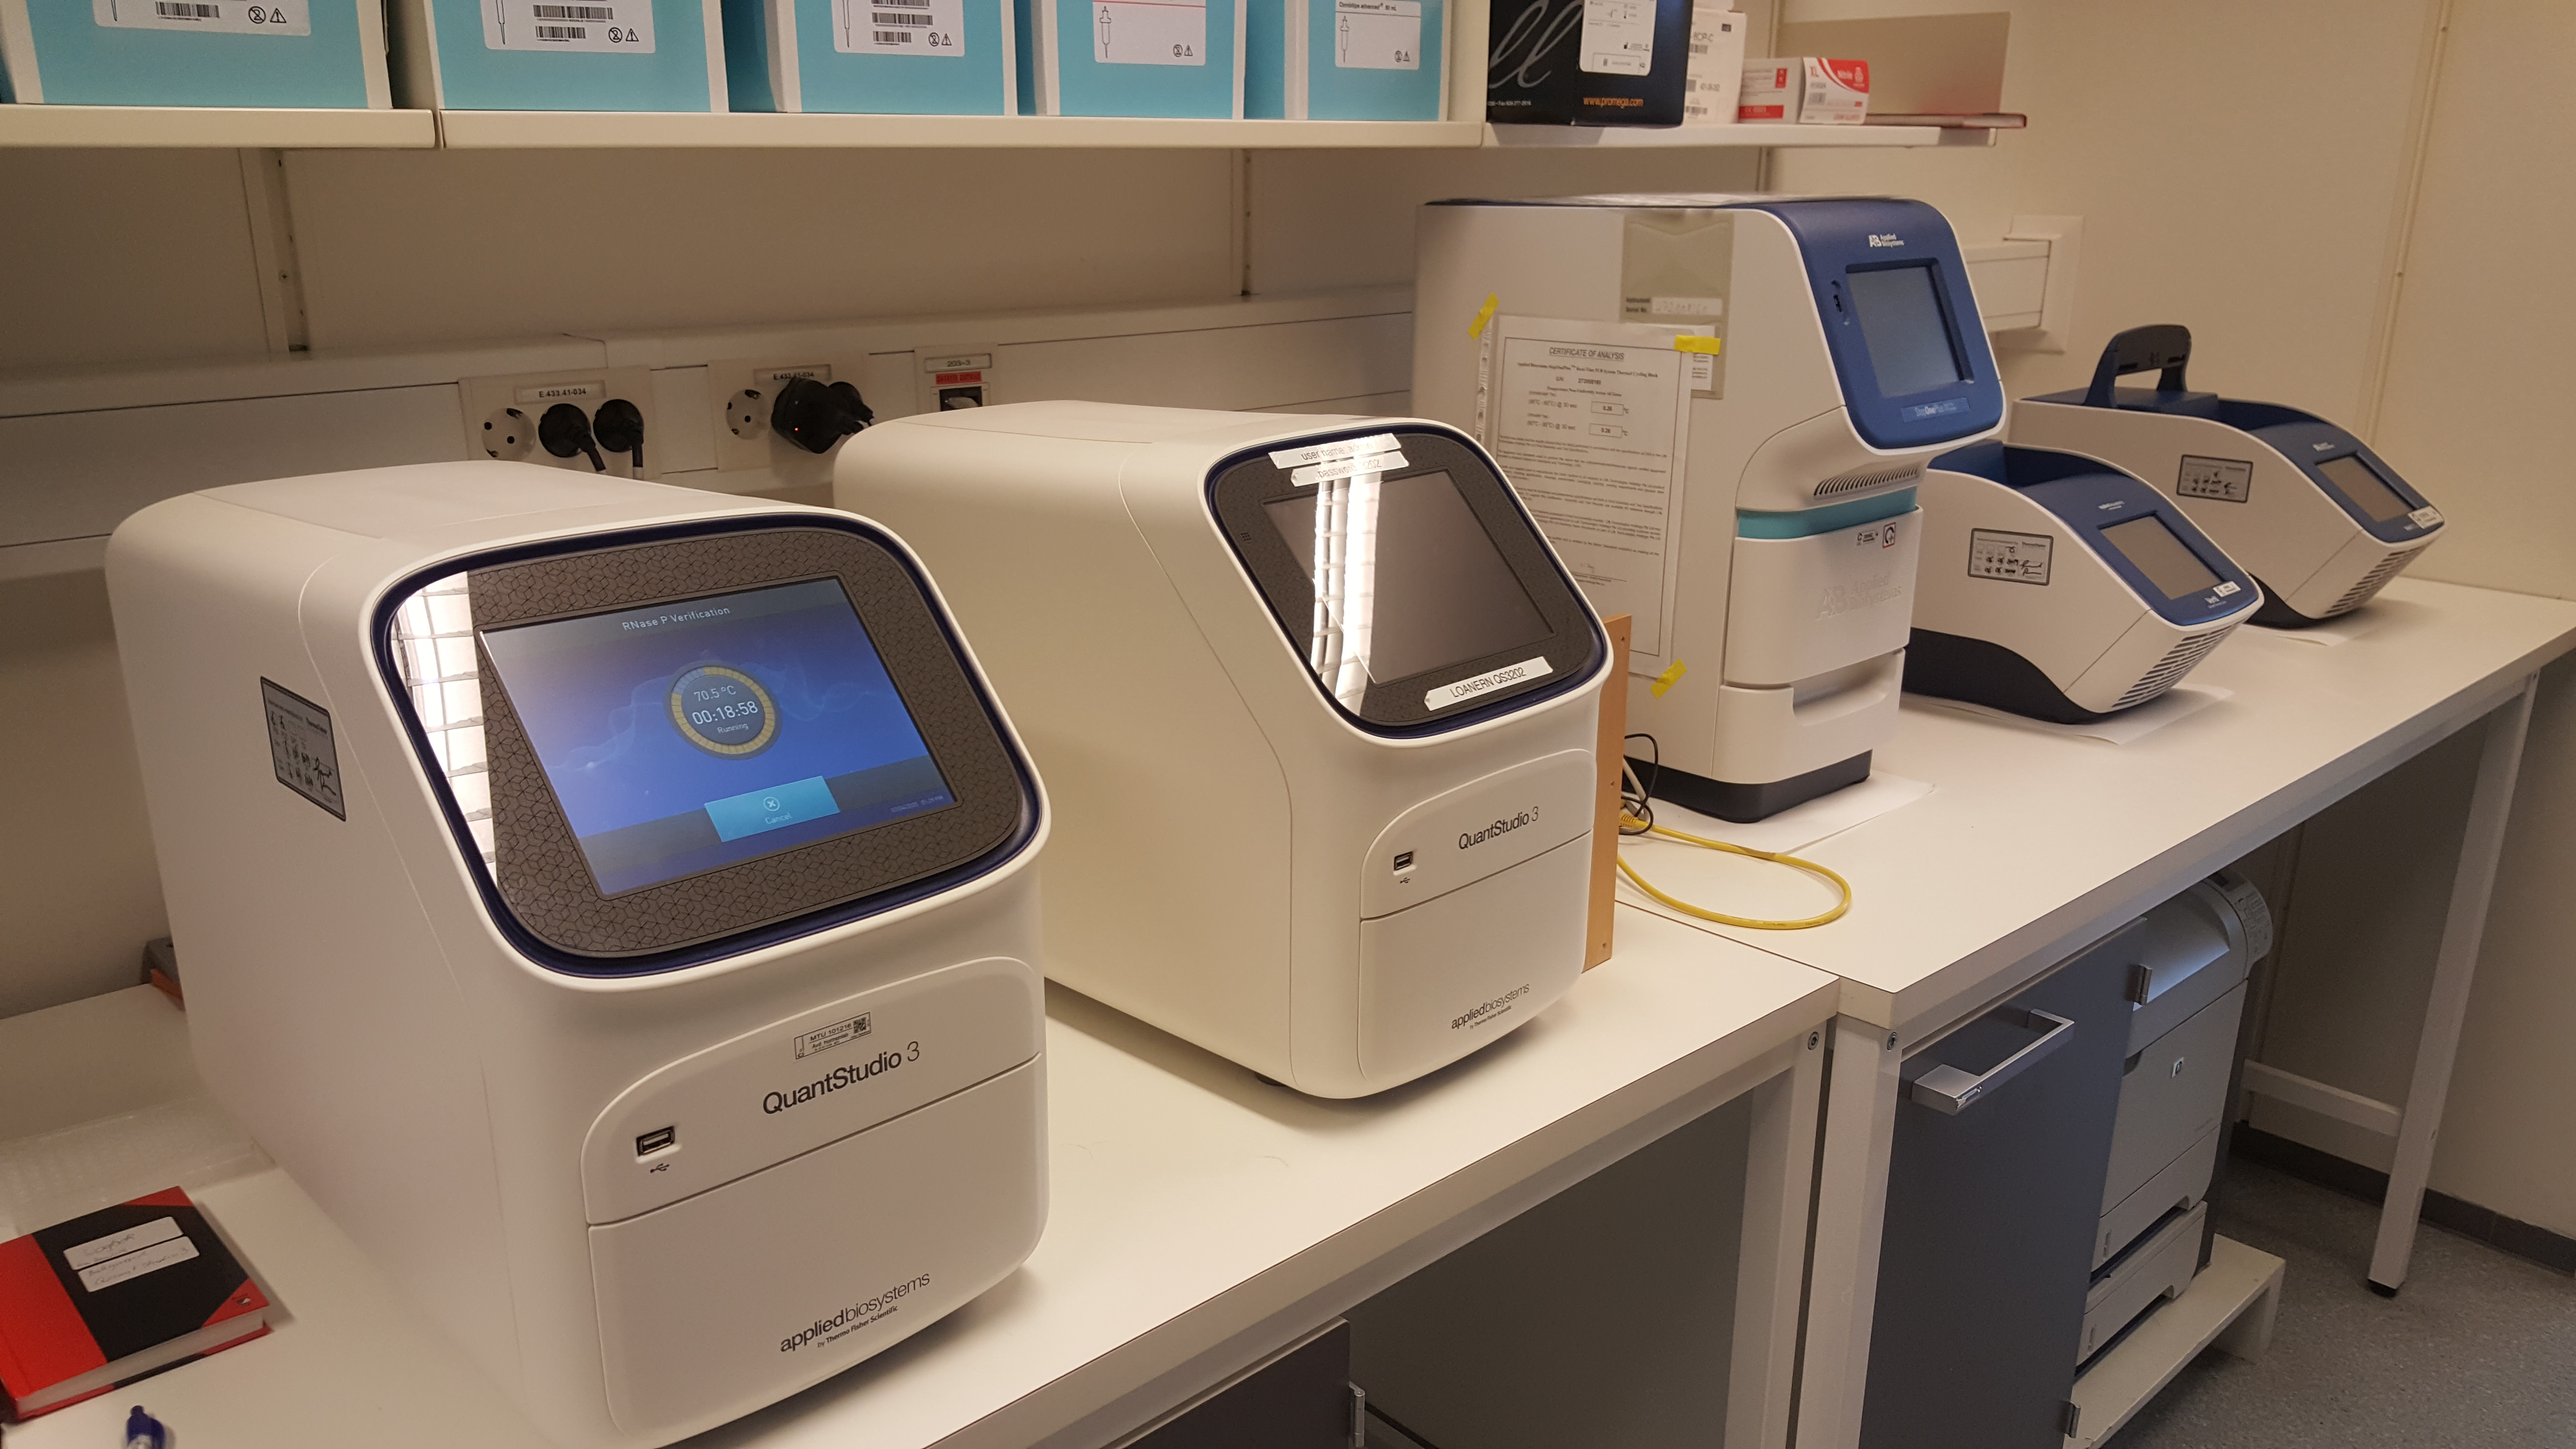 PCR-instrumenter til genotyping